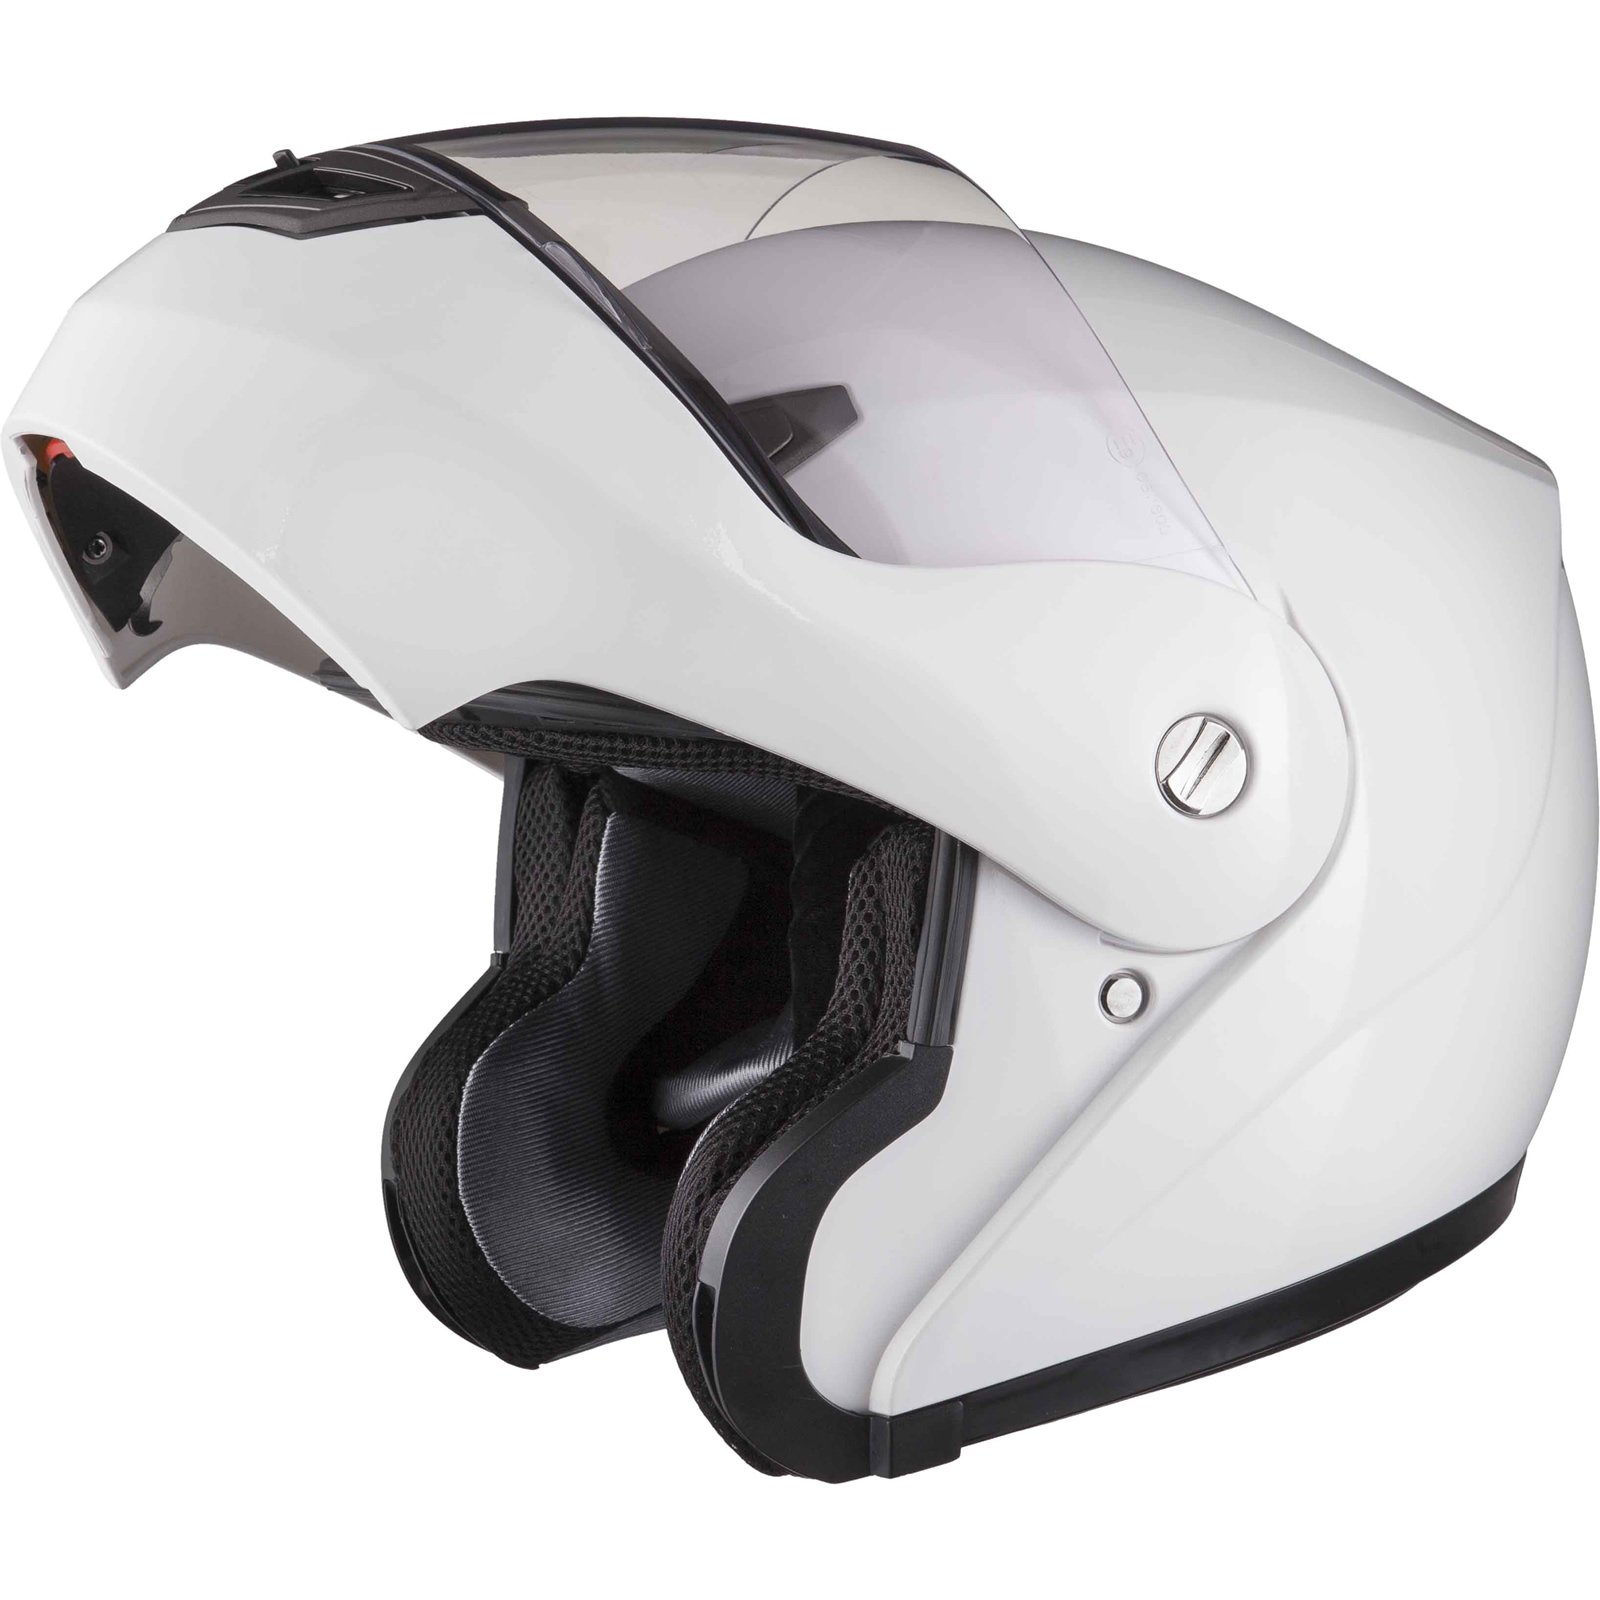 Shox Bullet Flip Front Motorcycle Helmet L Gloss White product image